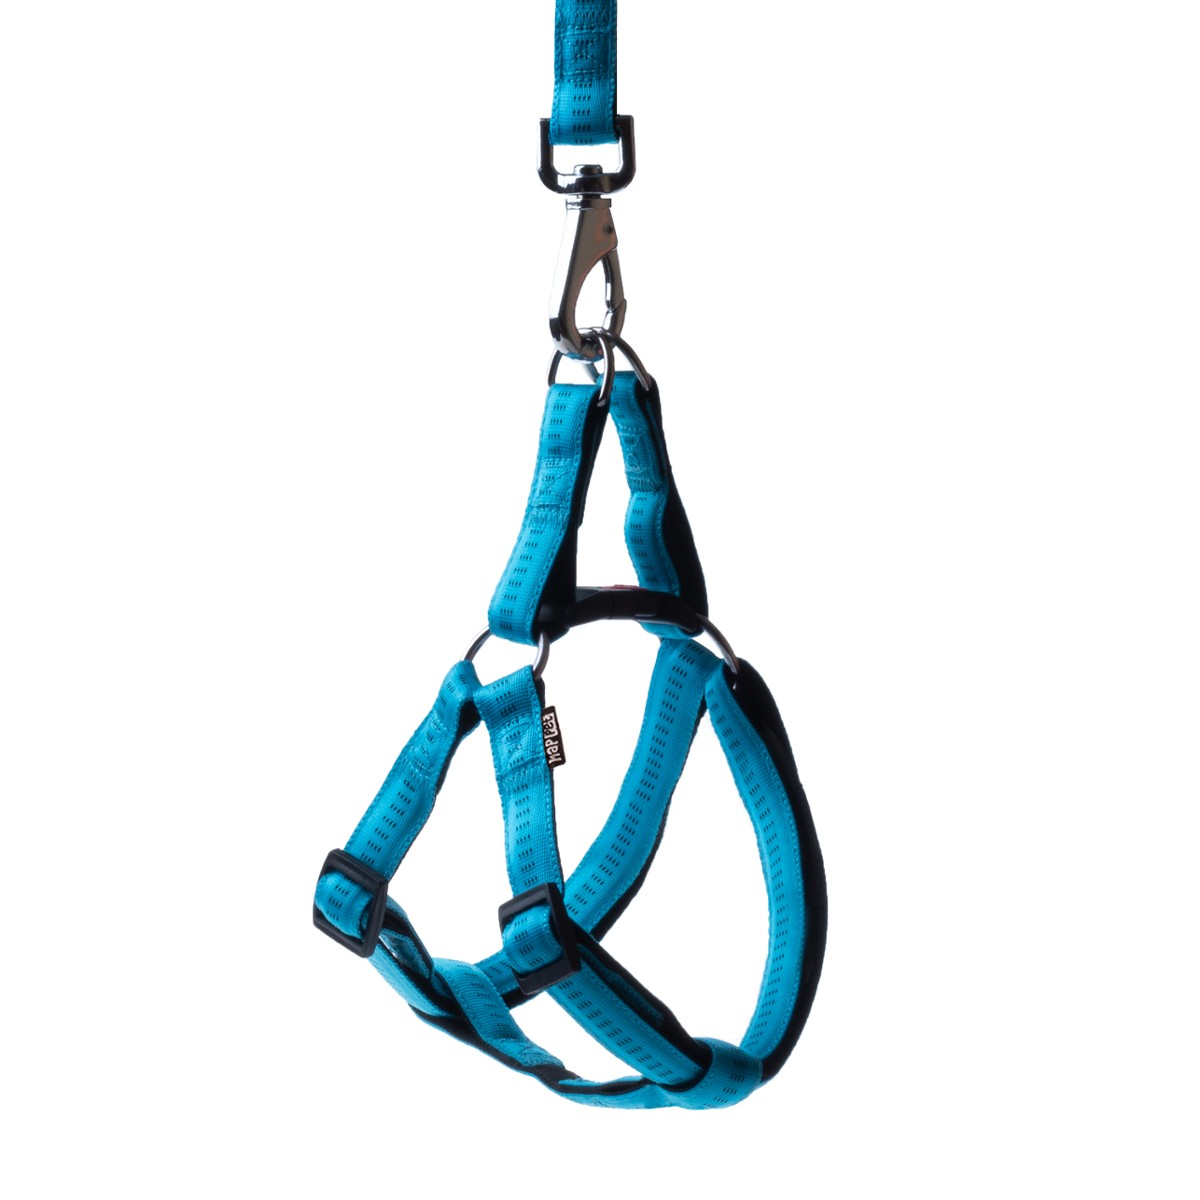 Soft nylon harness turquoise size XL 2.5cm